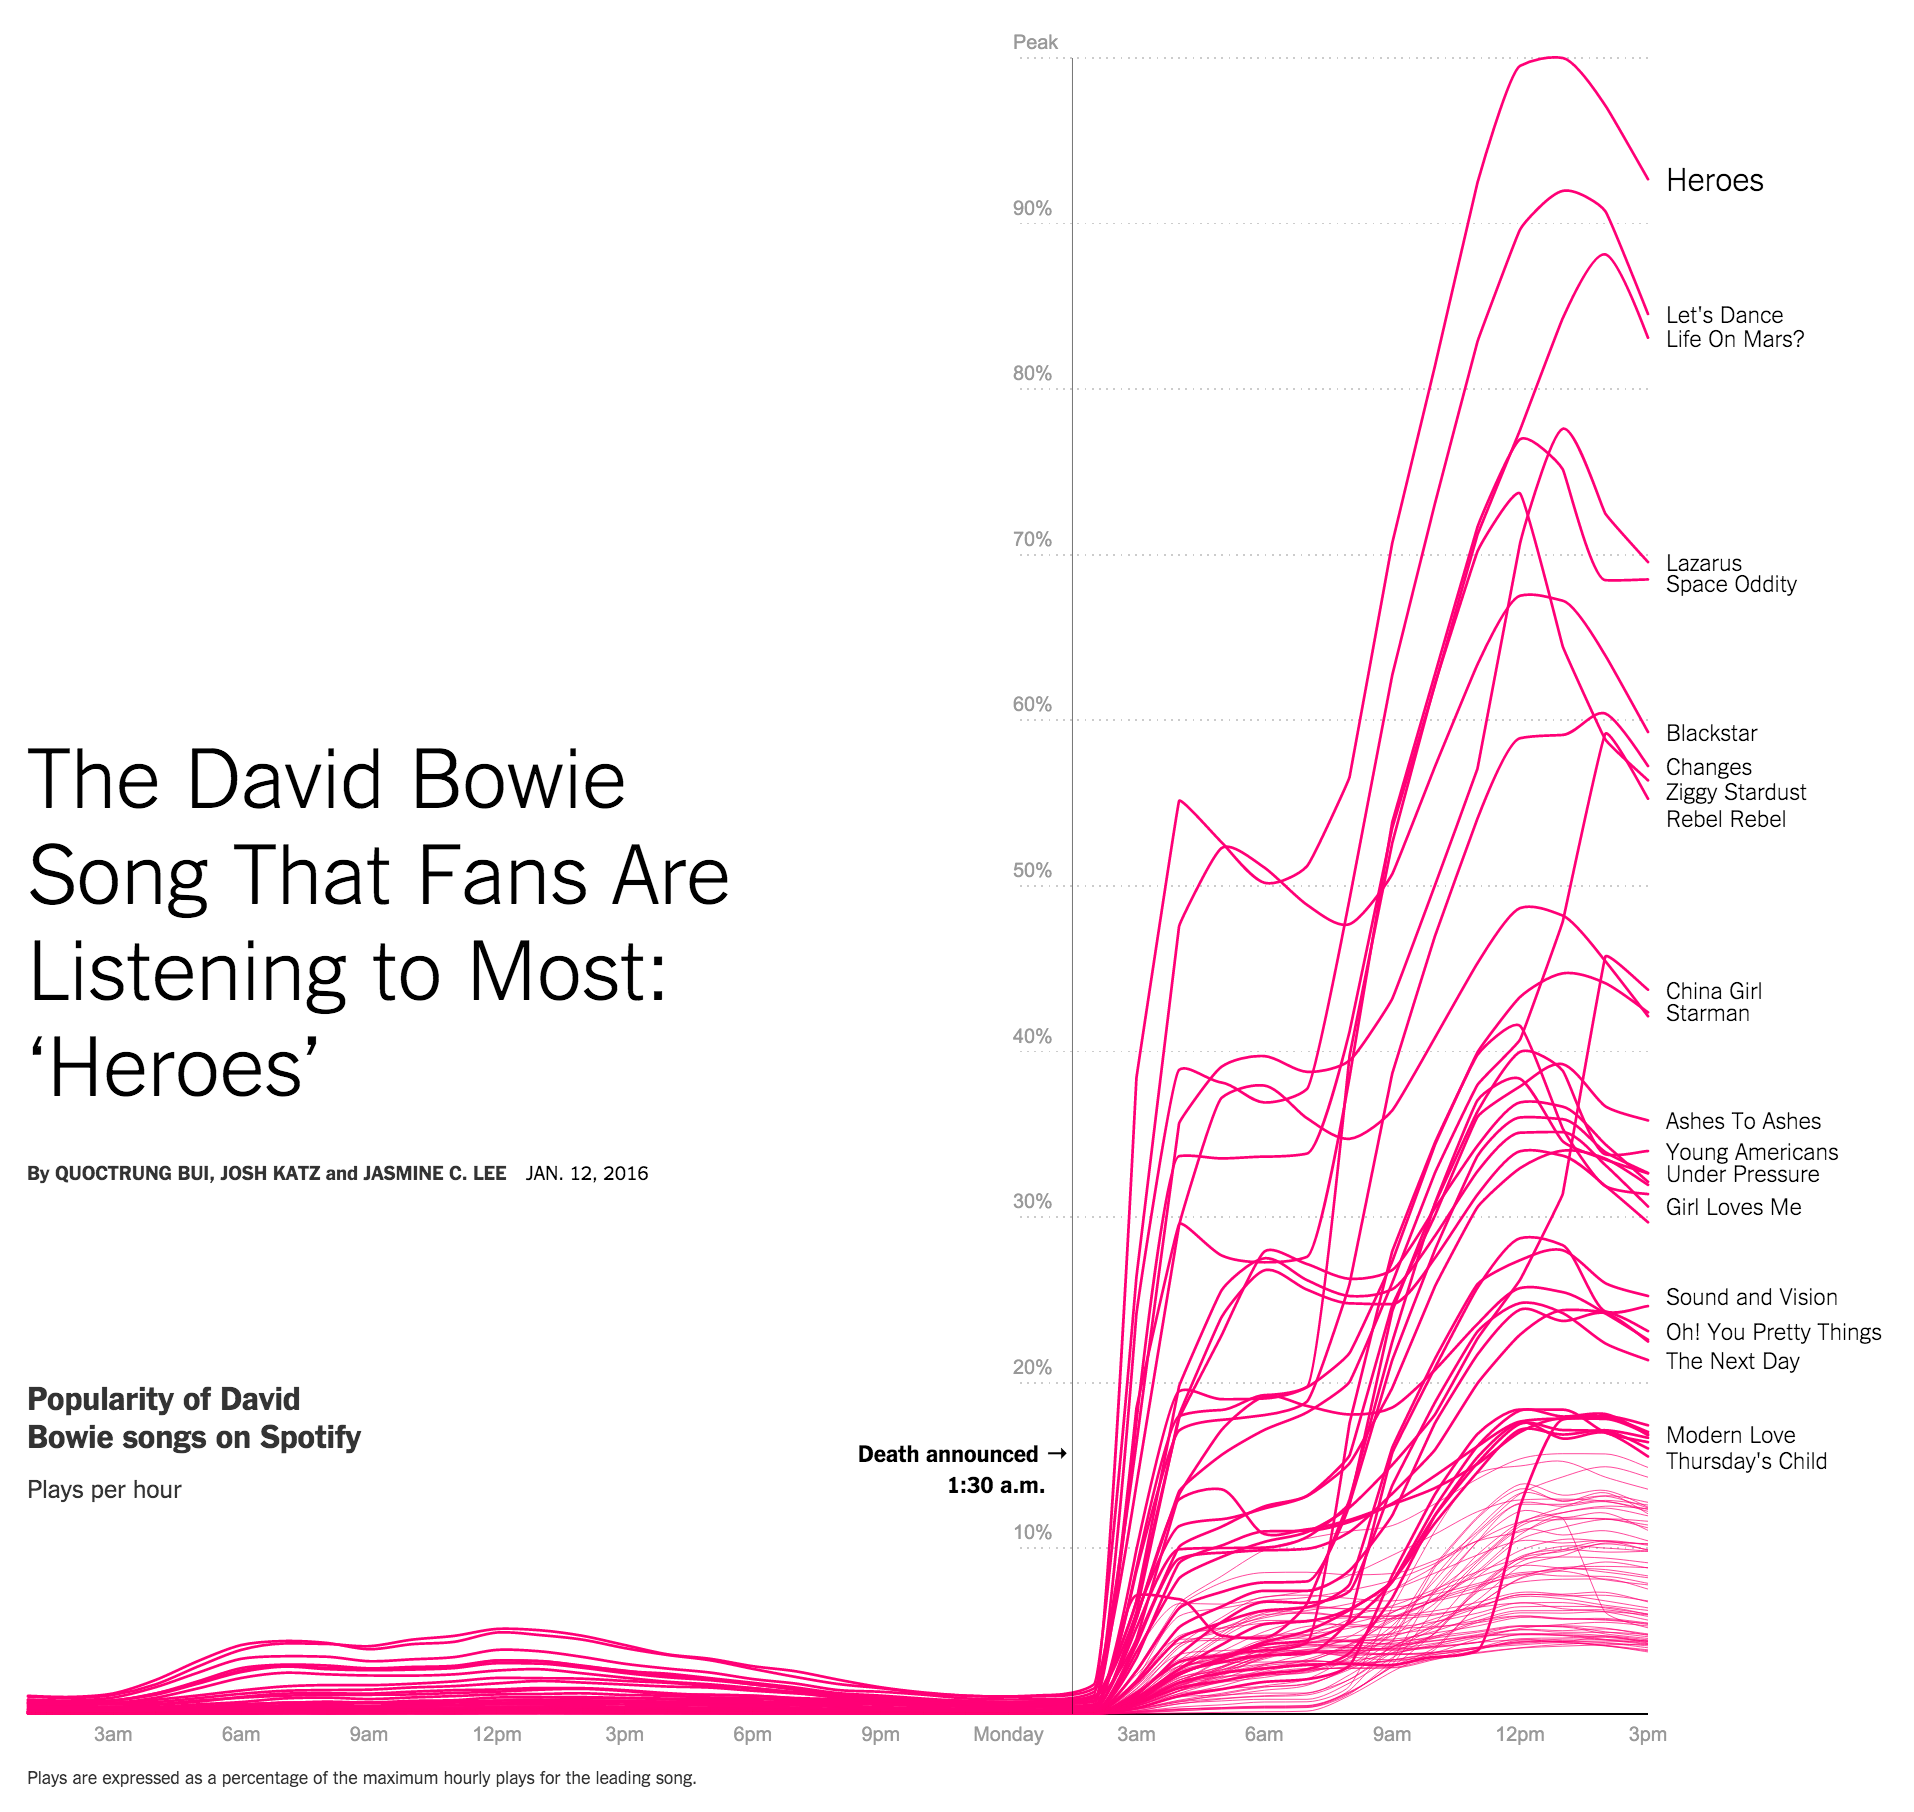 The David Bowie Song That Fans Are Listening to Most